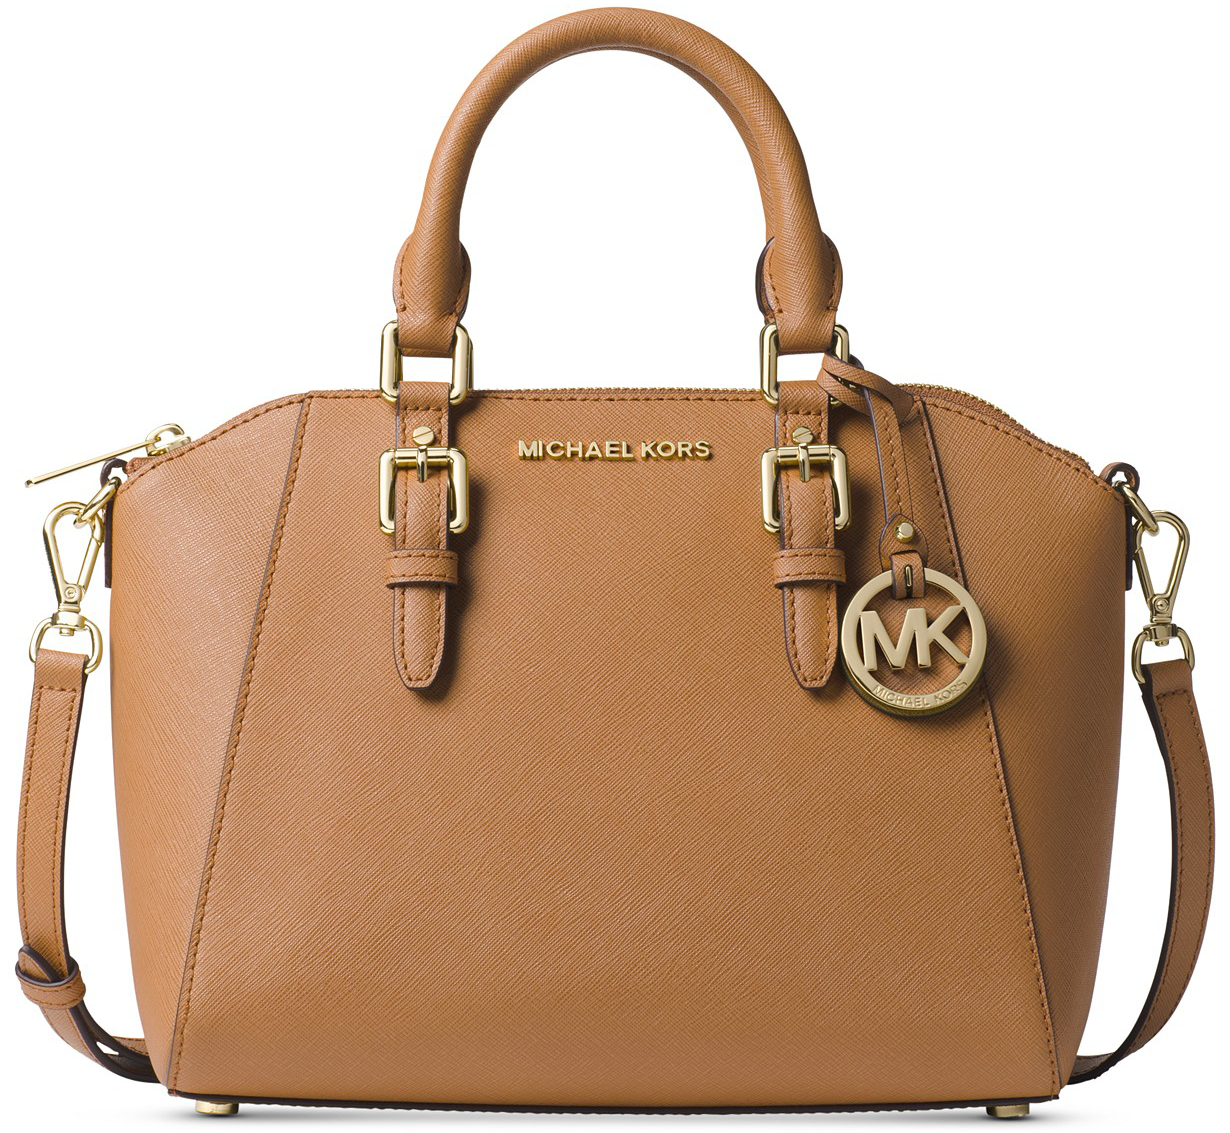 86185bf2043f Buy 1 MICHAEL Michael Kors Ciara Small Saffiano Leather Satchel (reg.  $228.00) $114.00, sale price through 11/24. Free shipping on orders $49+ or  free store ...